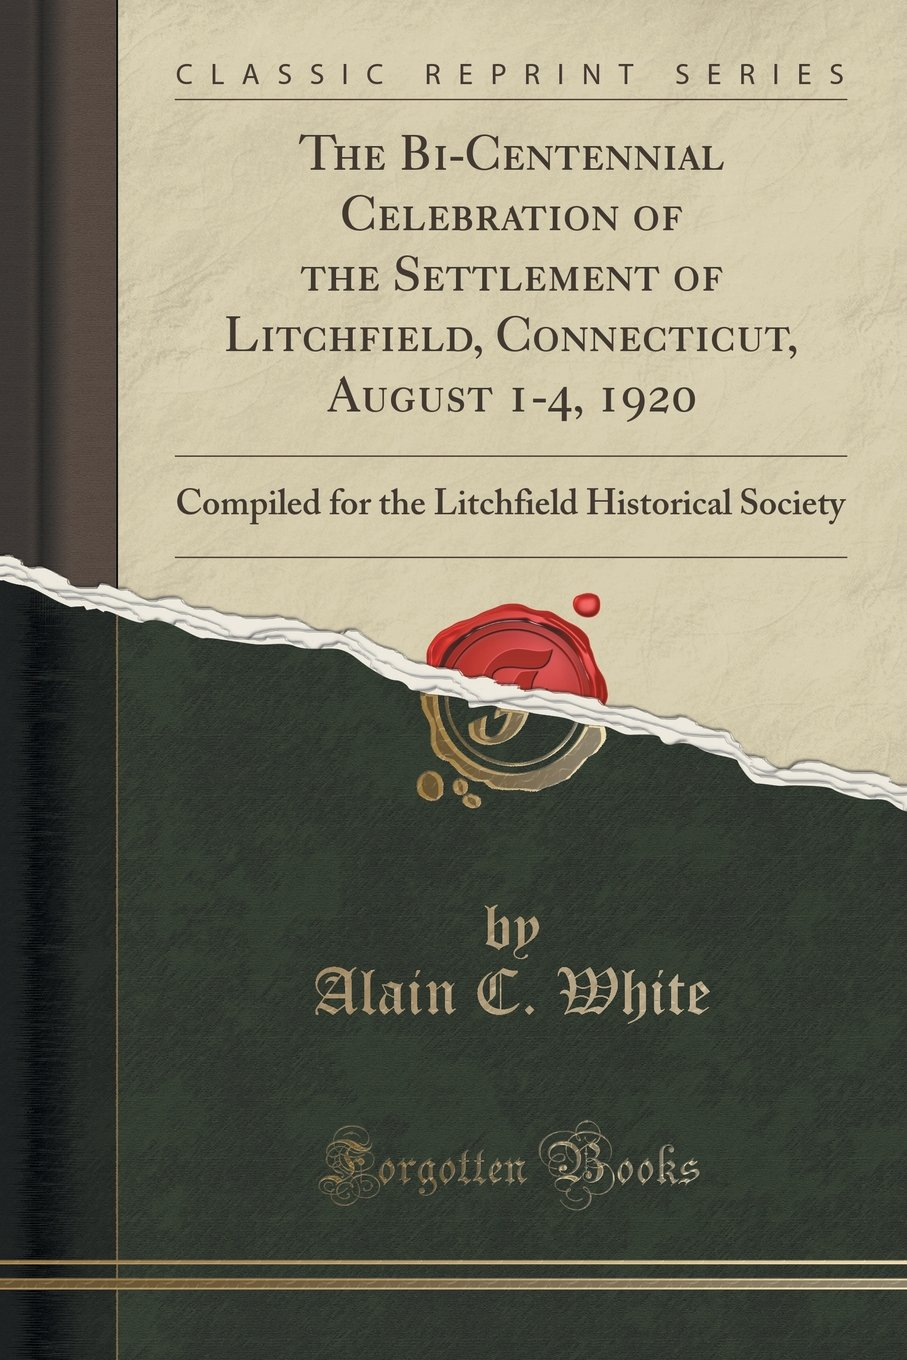 The Bi-Centennial Celebration of the Settlement of Litchfield, Connecticut, August 1-4, 1920: Compiled for the Litchfield Historical Society (Classic Reprint)